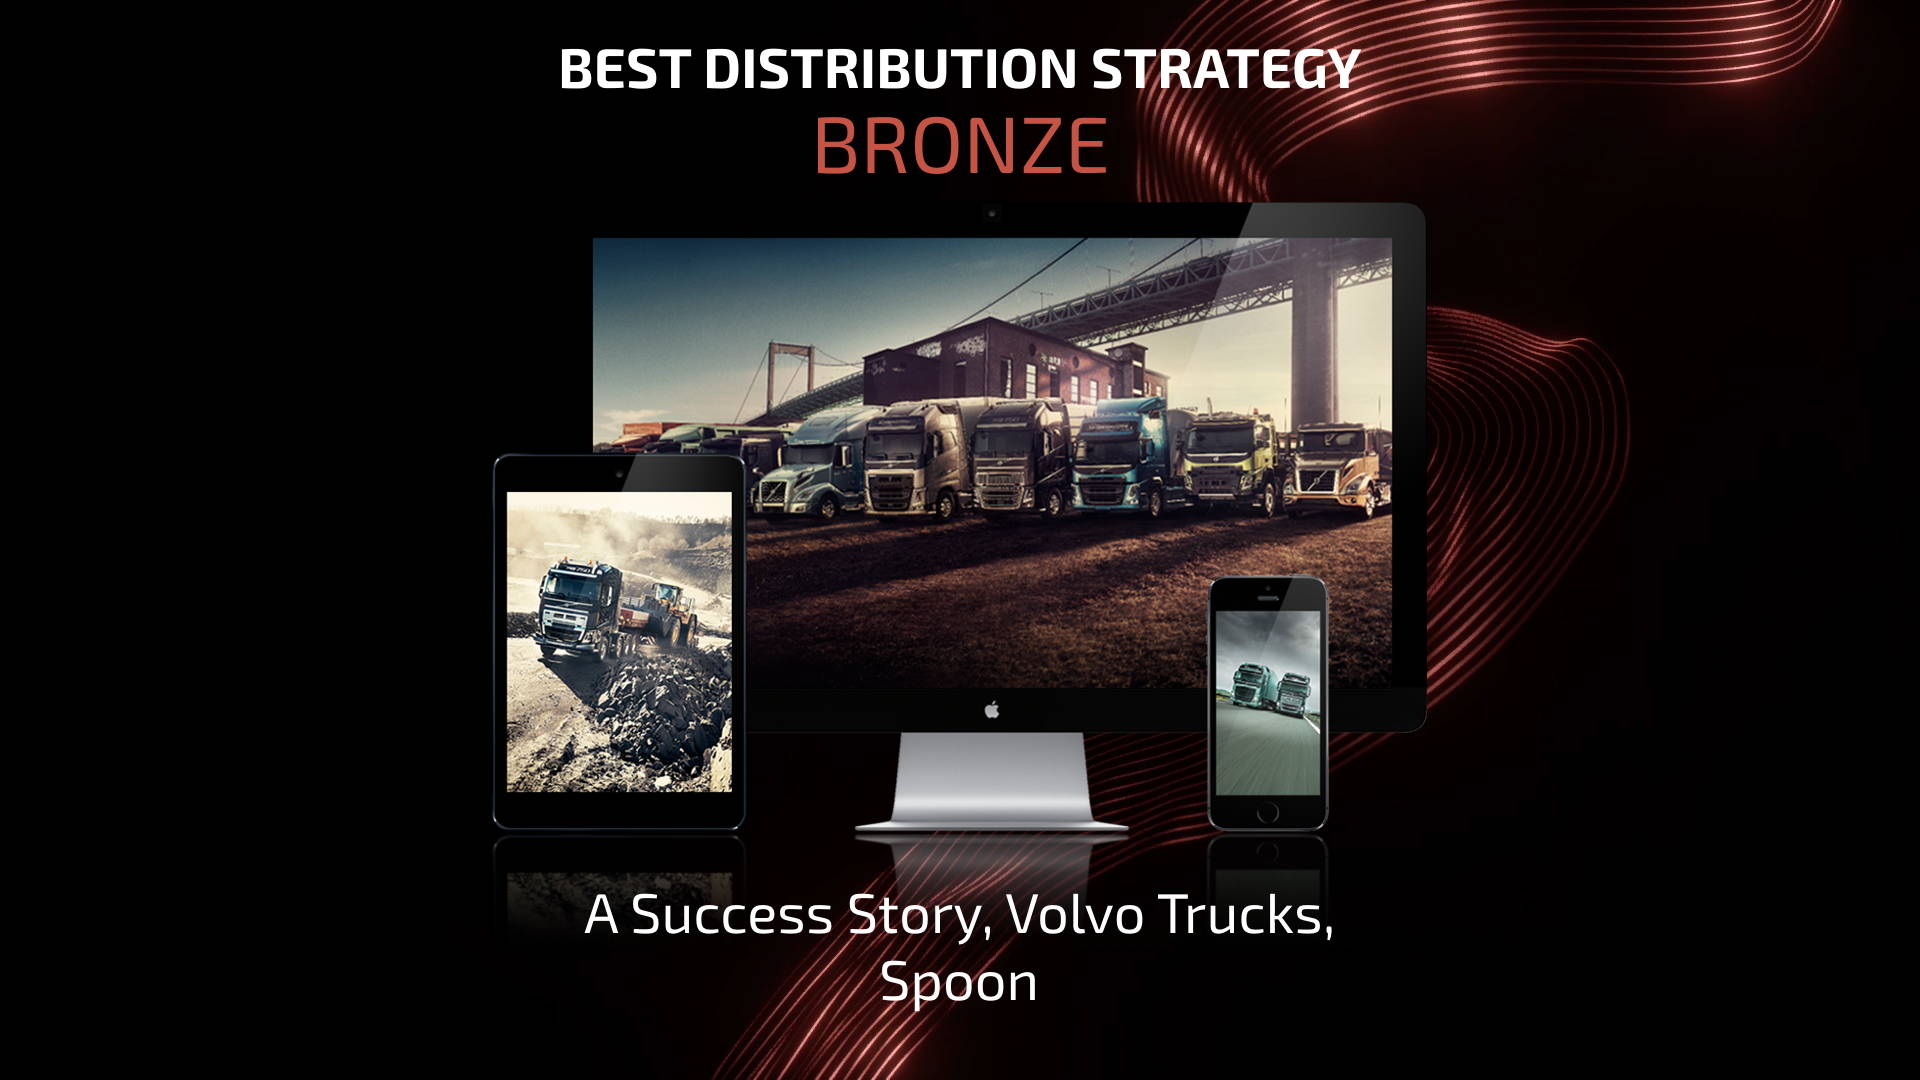 Best Distribution Strategy - Bronze